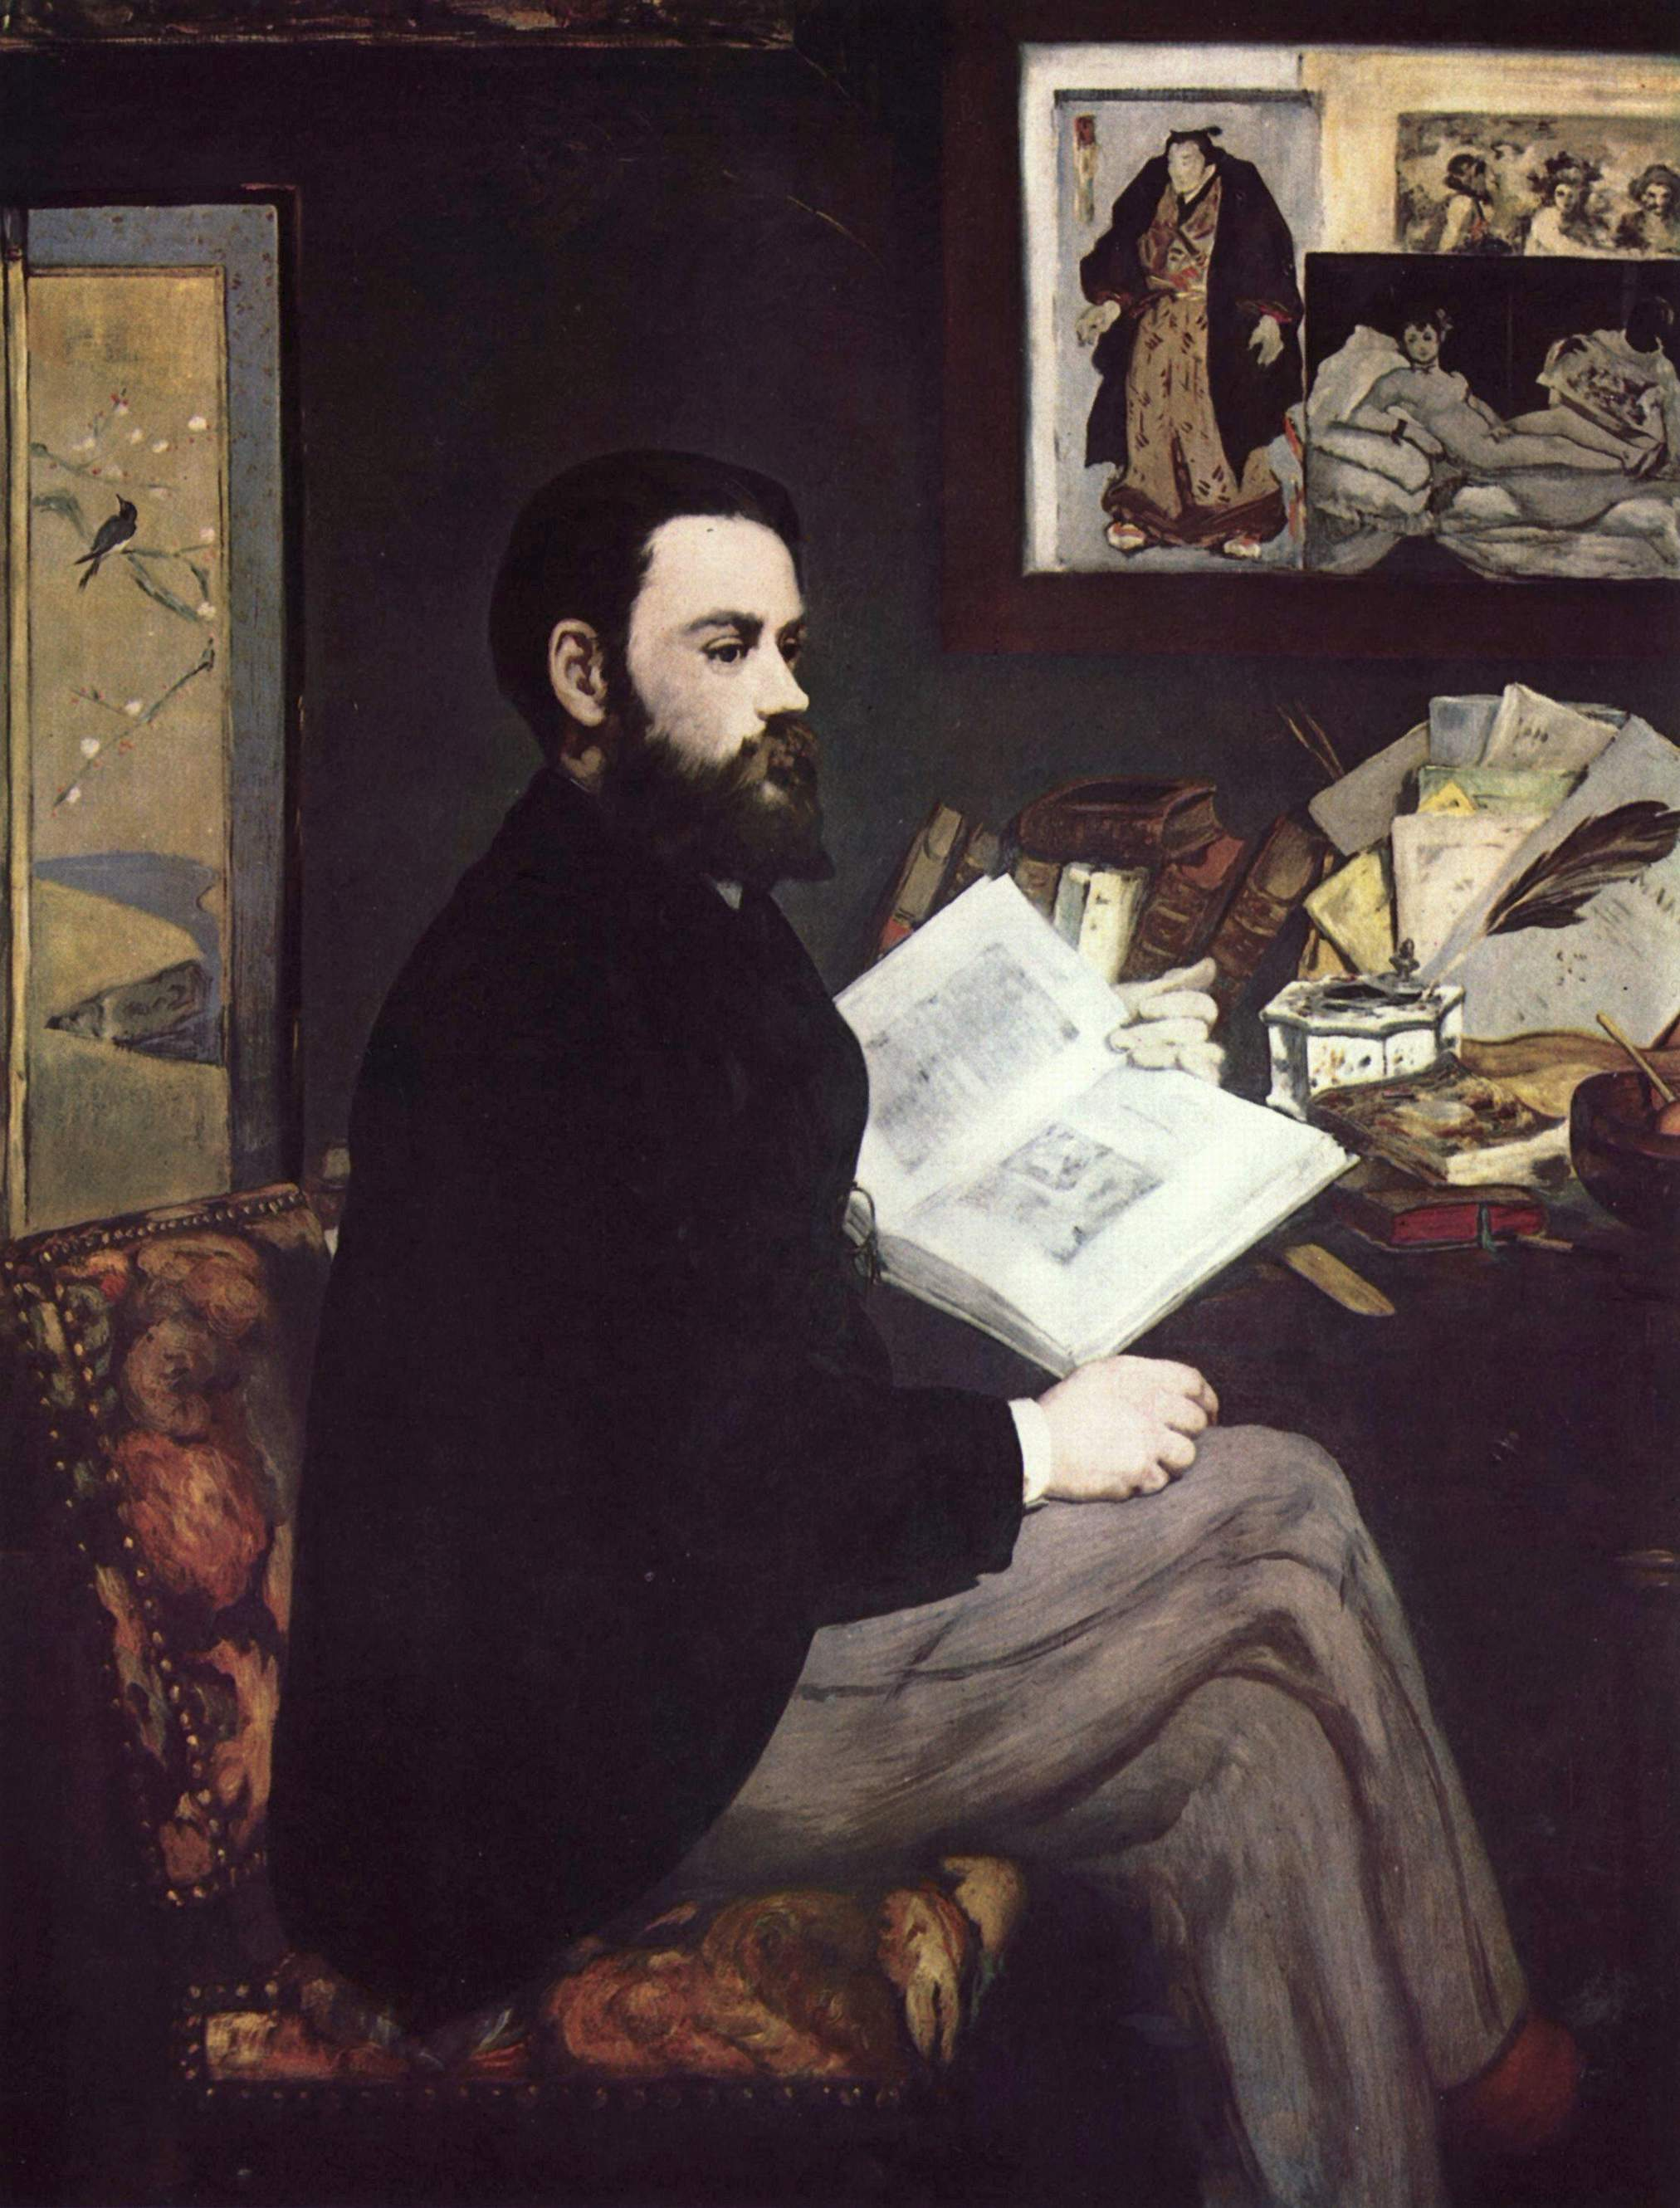 https://upload.wikimedia.org/wikipedia/commons/3/3f/Edouard_Manet_049.jpg